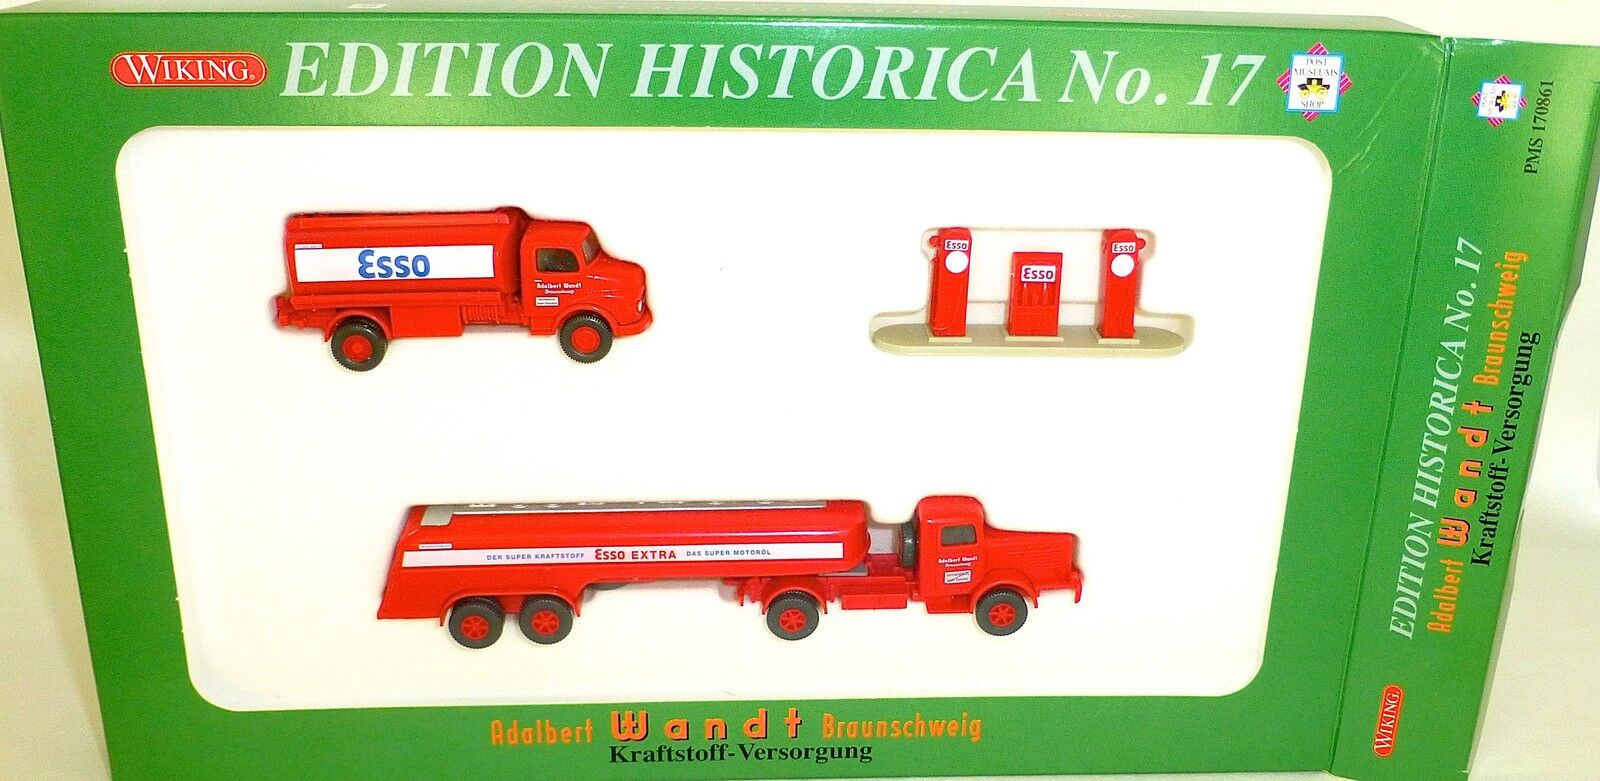 Edition Historica No 17 past Esso Wiking Pms 170861 170861 170861 H0 1 87 Ovp Lf1 Å 061c3a